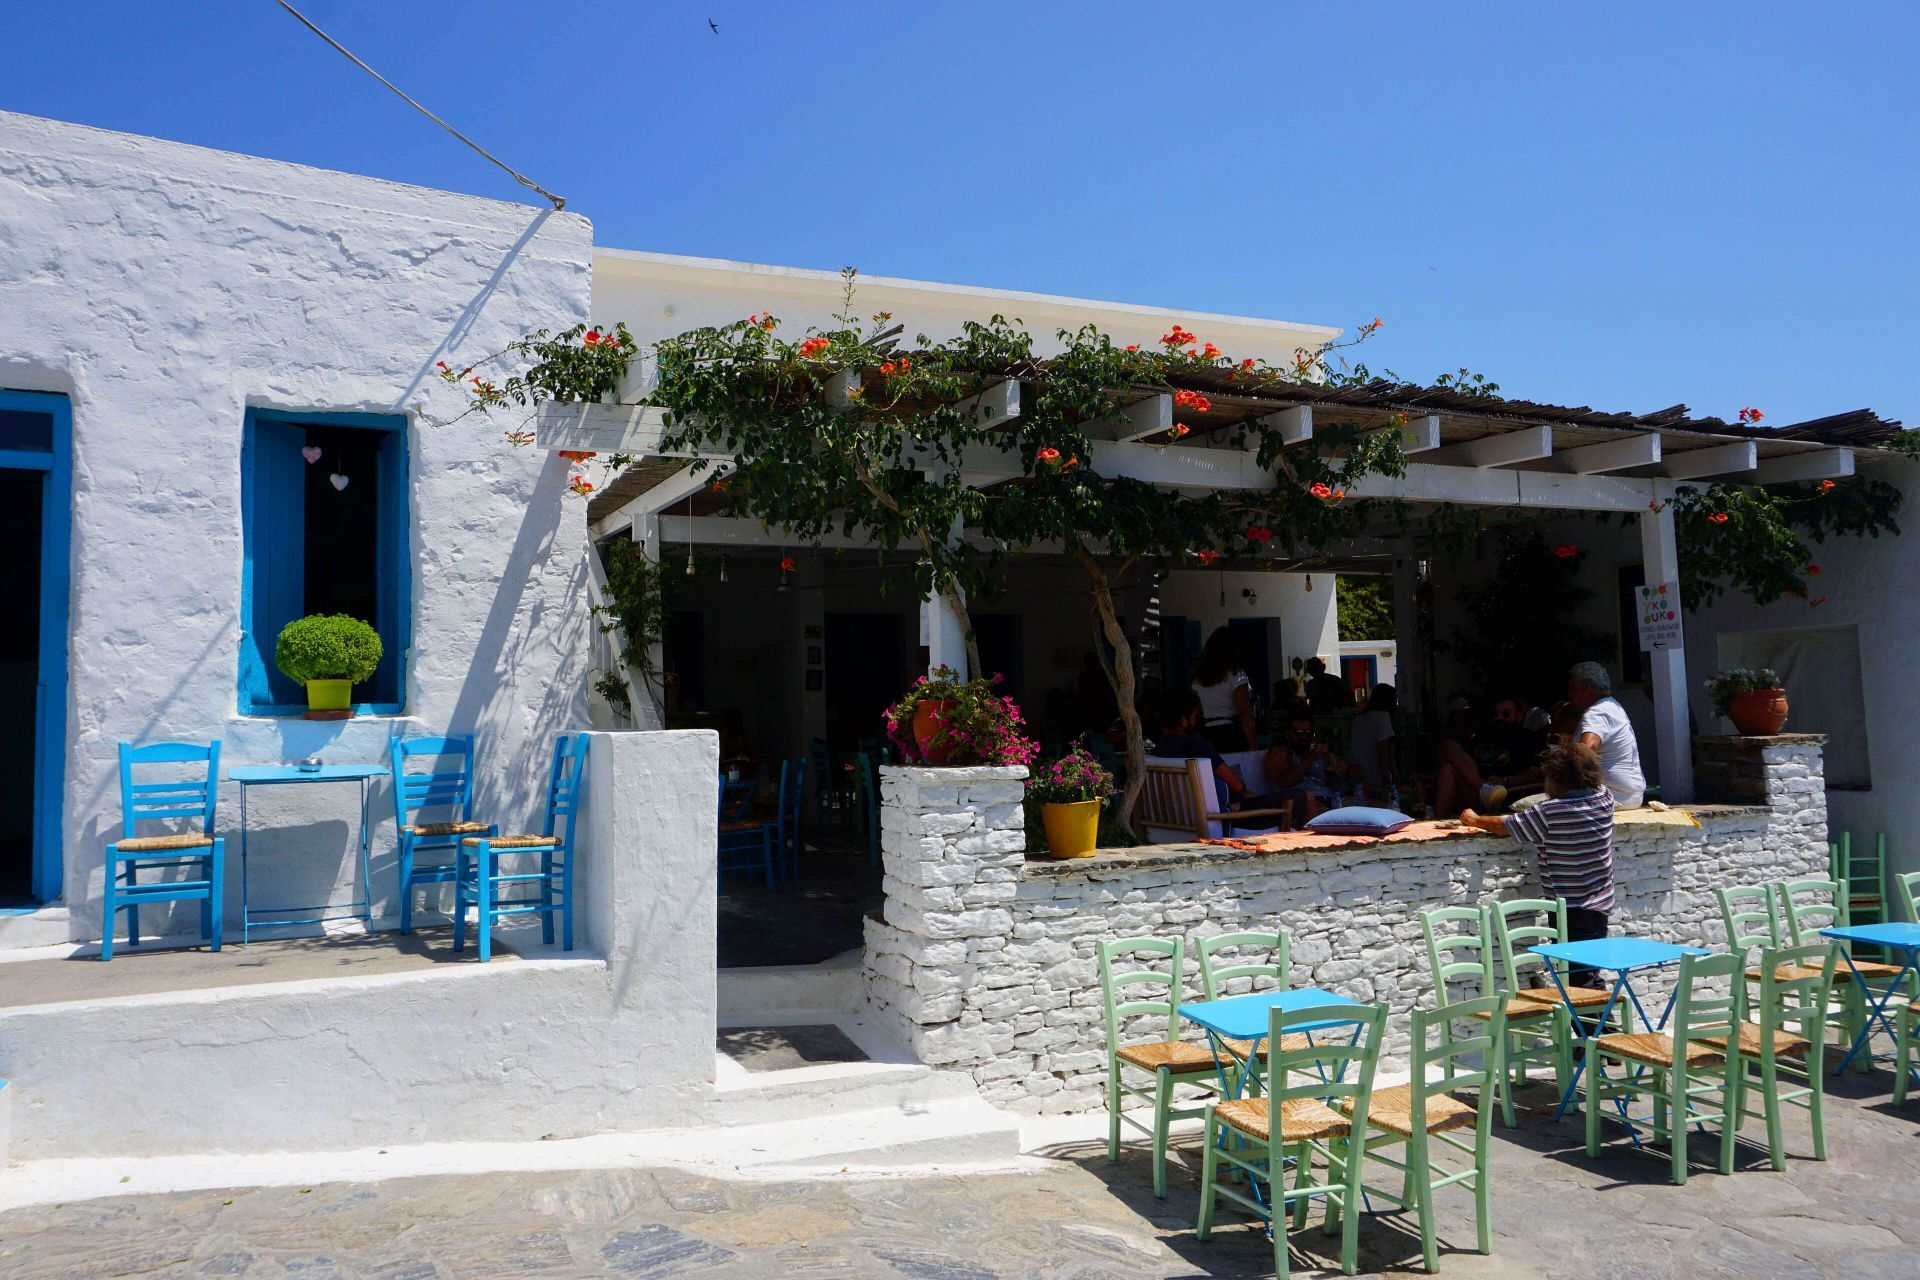 Places to eat and drink in Schinoussa